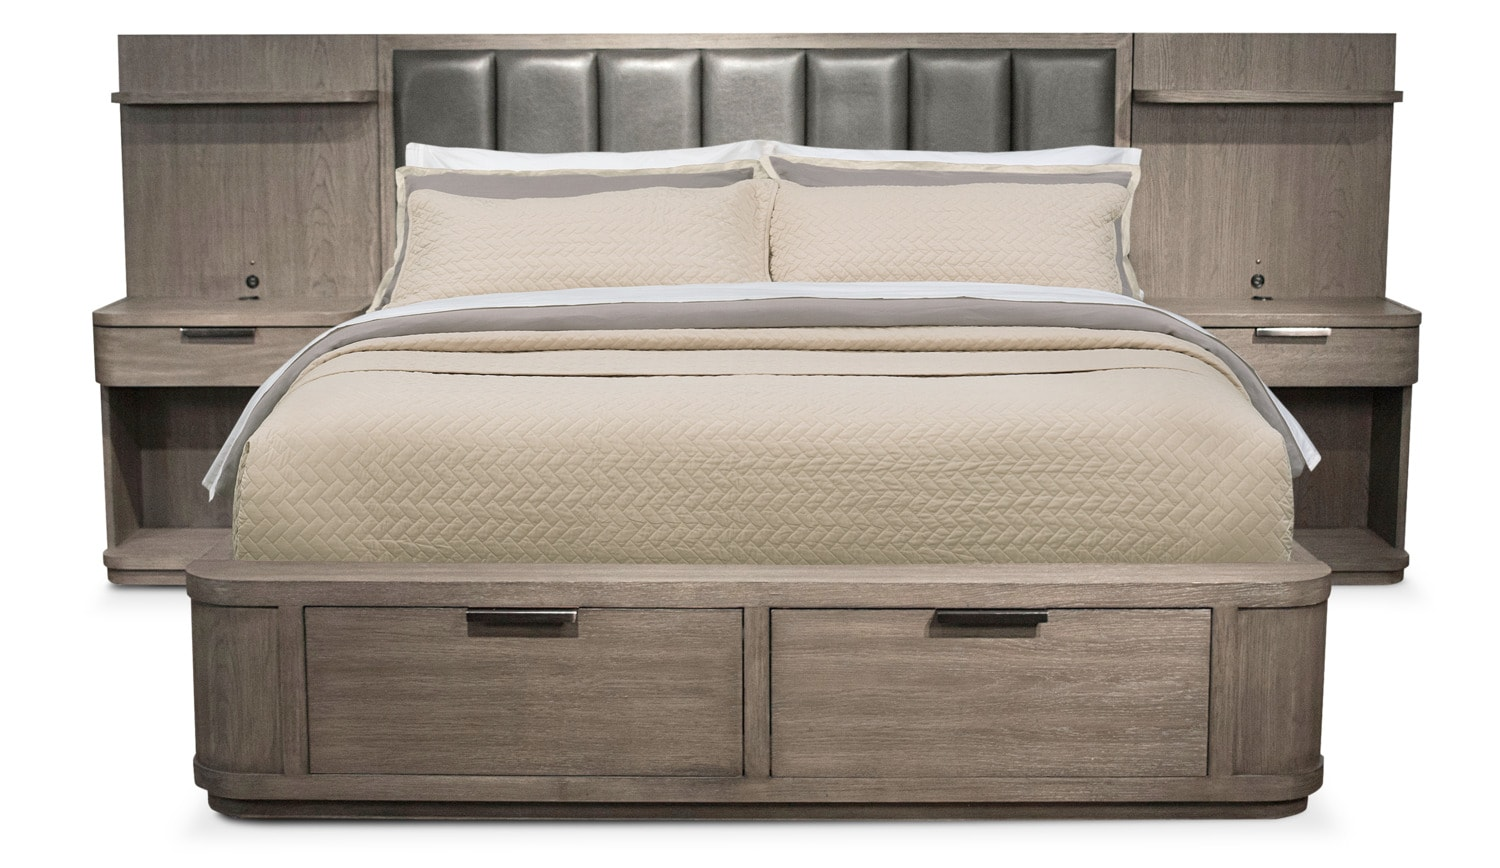 Bedroom Furniture - Malibu King Low Upholstered Storage Wall Bed - Gray